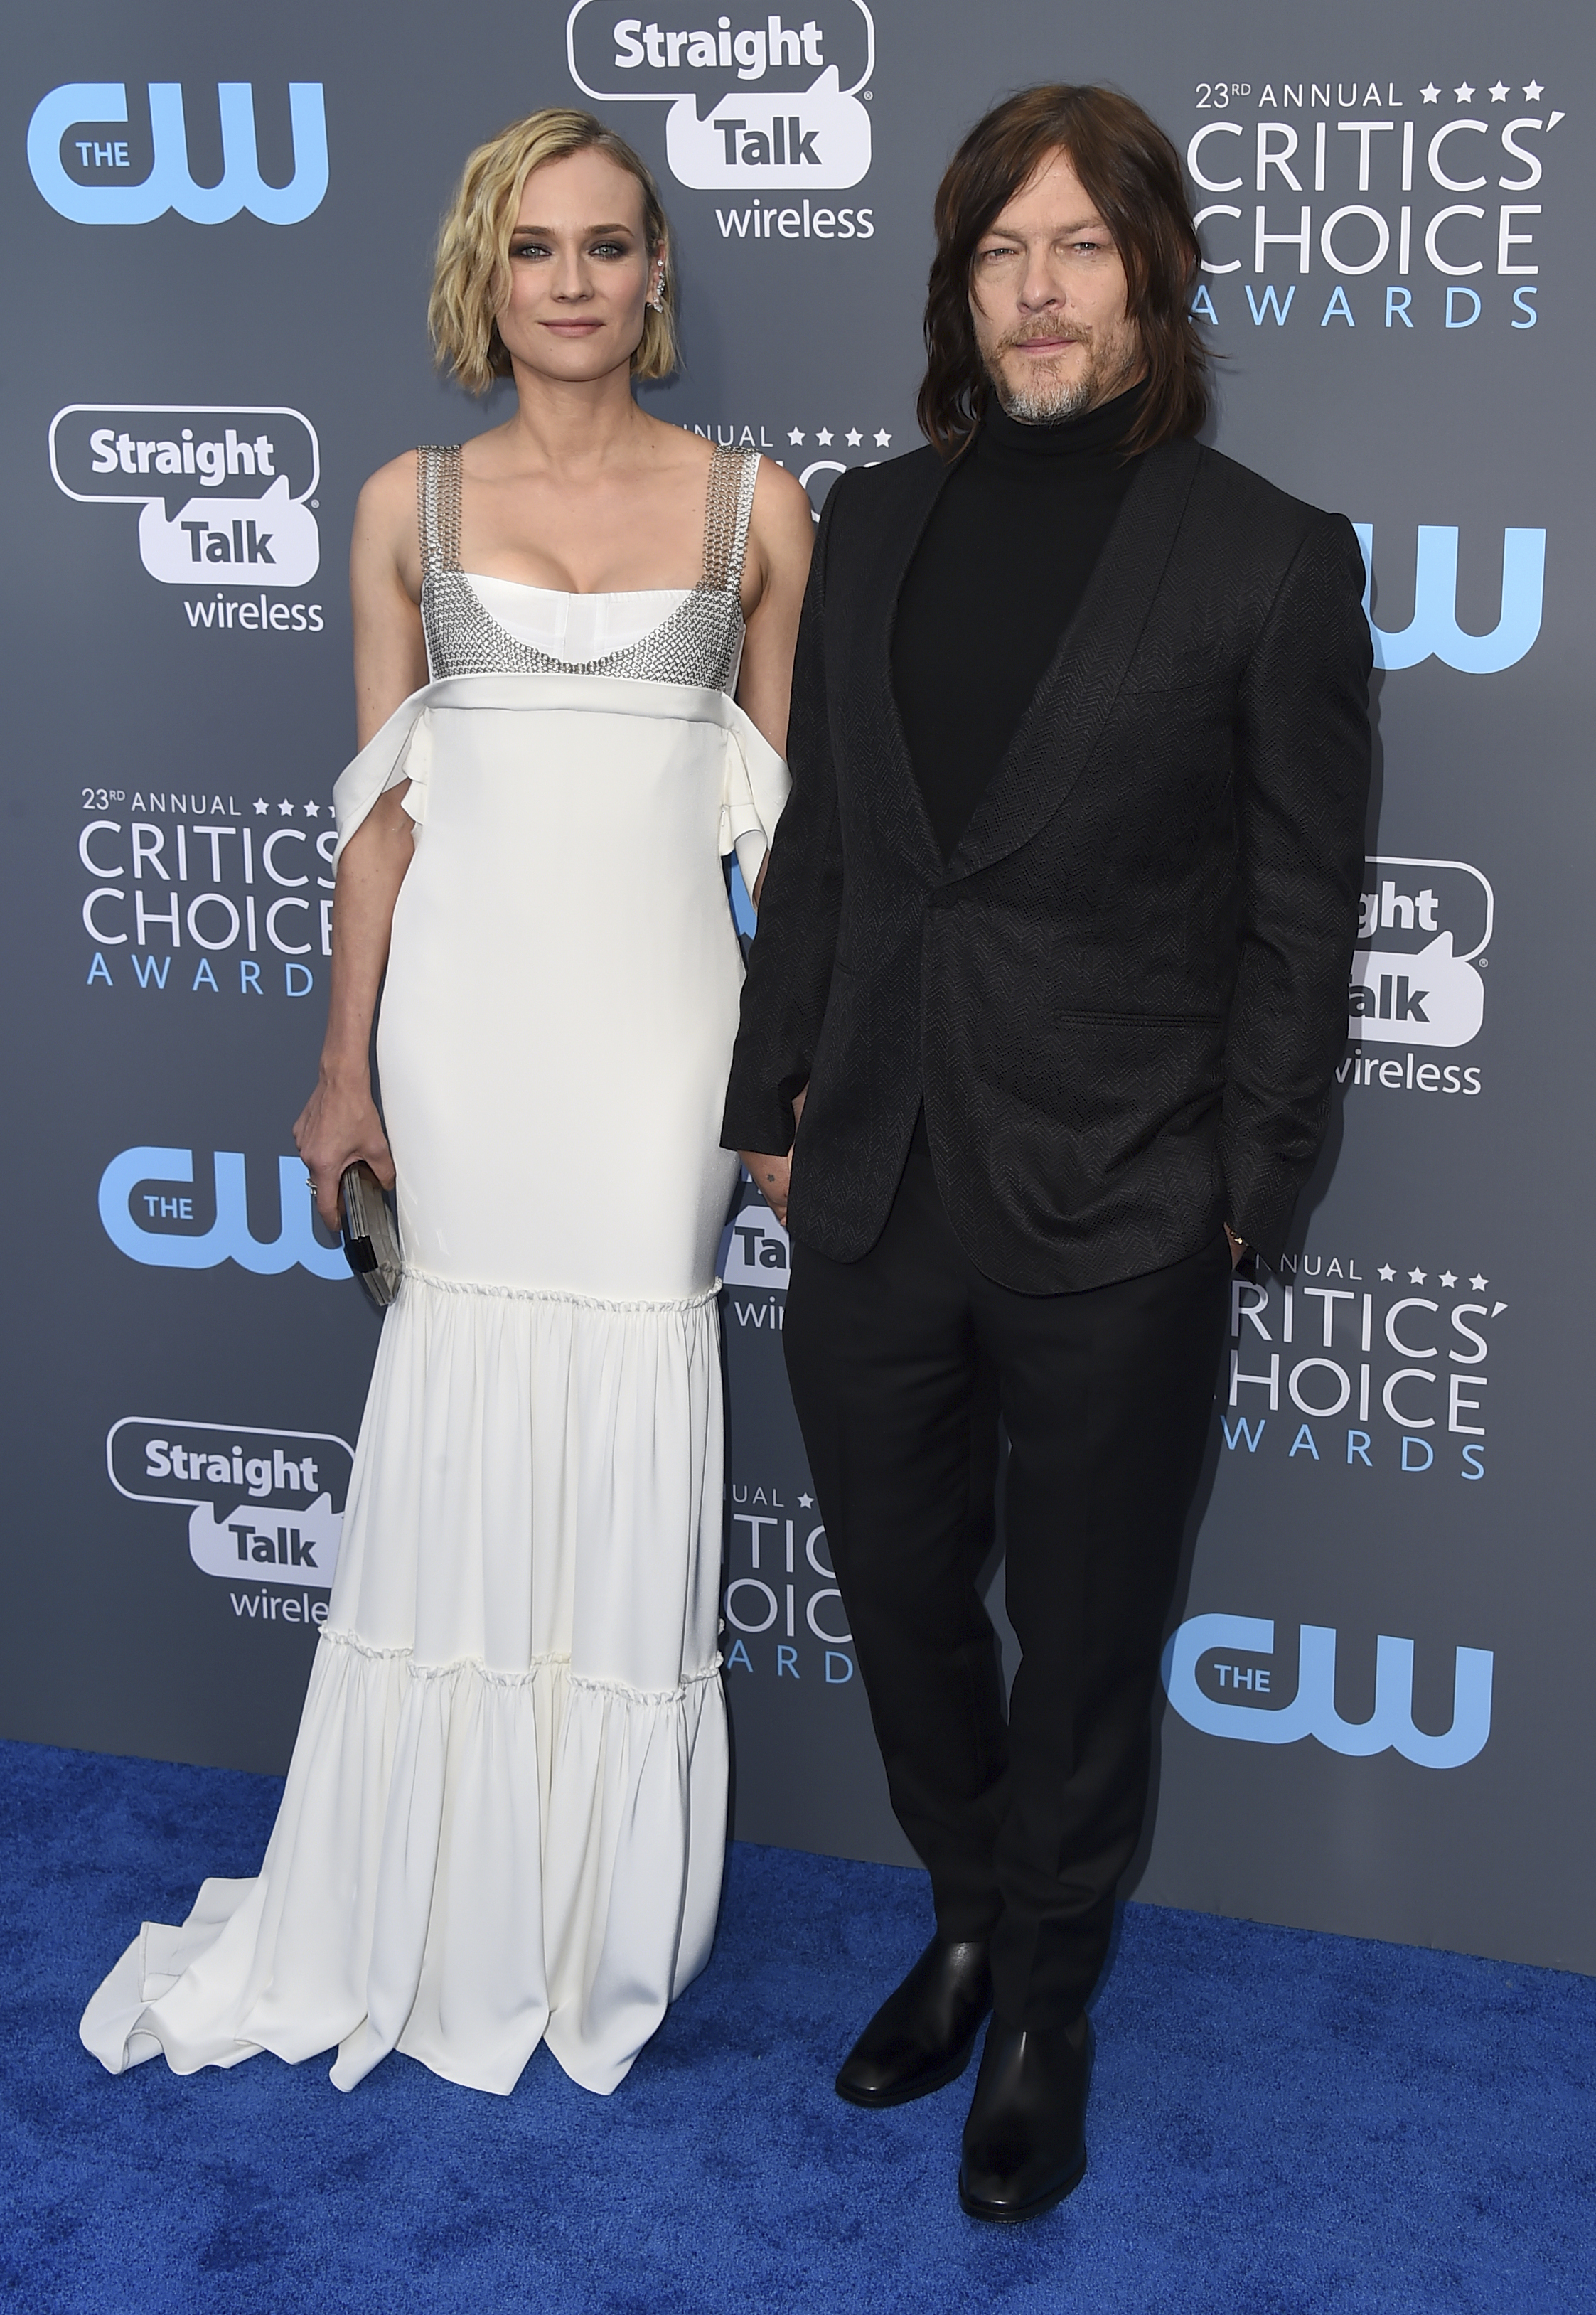 <div class='meta'><div class='origin-logo' data-origin='AP'></div><span class='caption-text' data-credit='Jordan Strauss/Invision/AP'>Diane Kruger, left, and Norman Reedus arrive at the 23rd annual Critics' Choice Awards at the Barker Hangar on Thursday, Jan. 11, 2018, in Santa Monica, Calif.</span></div>